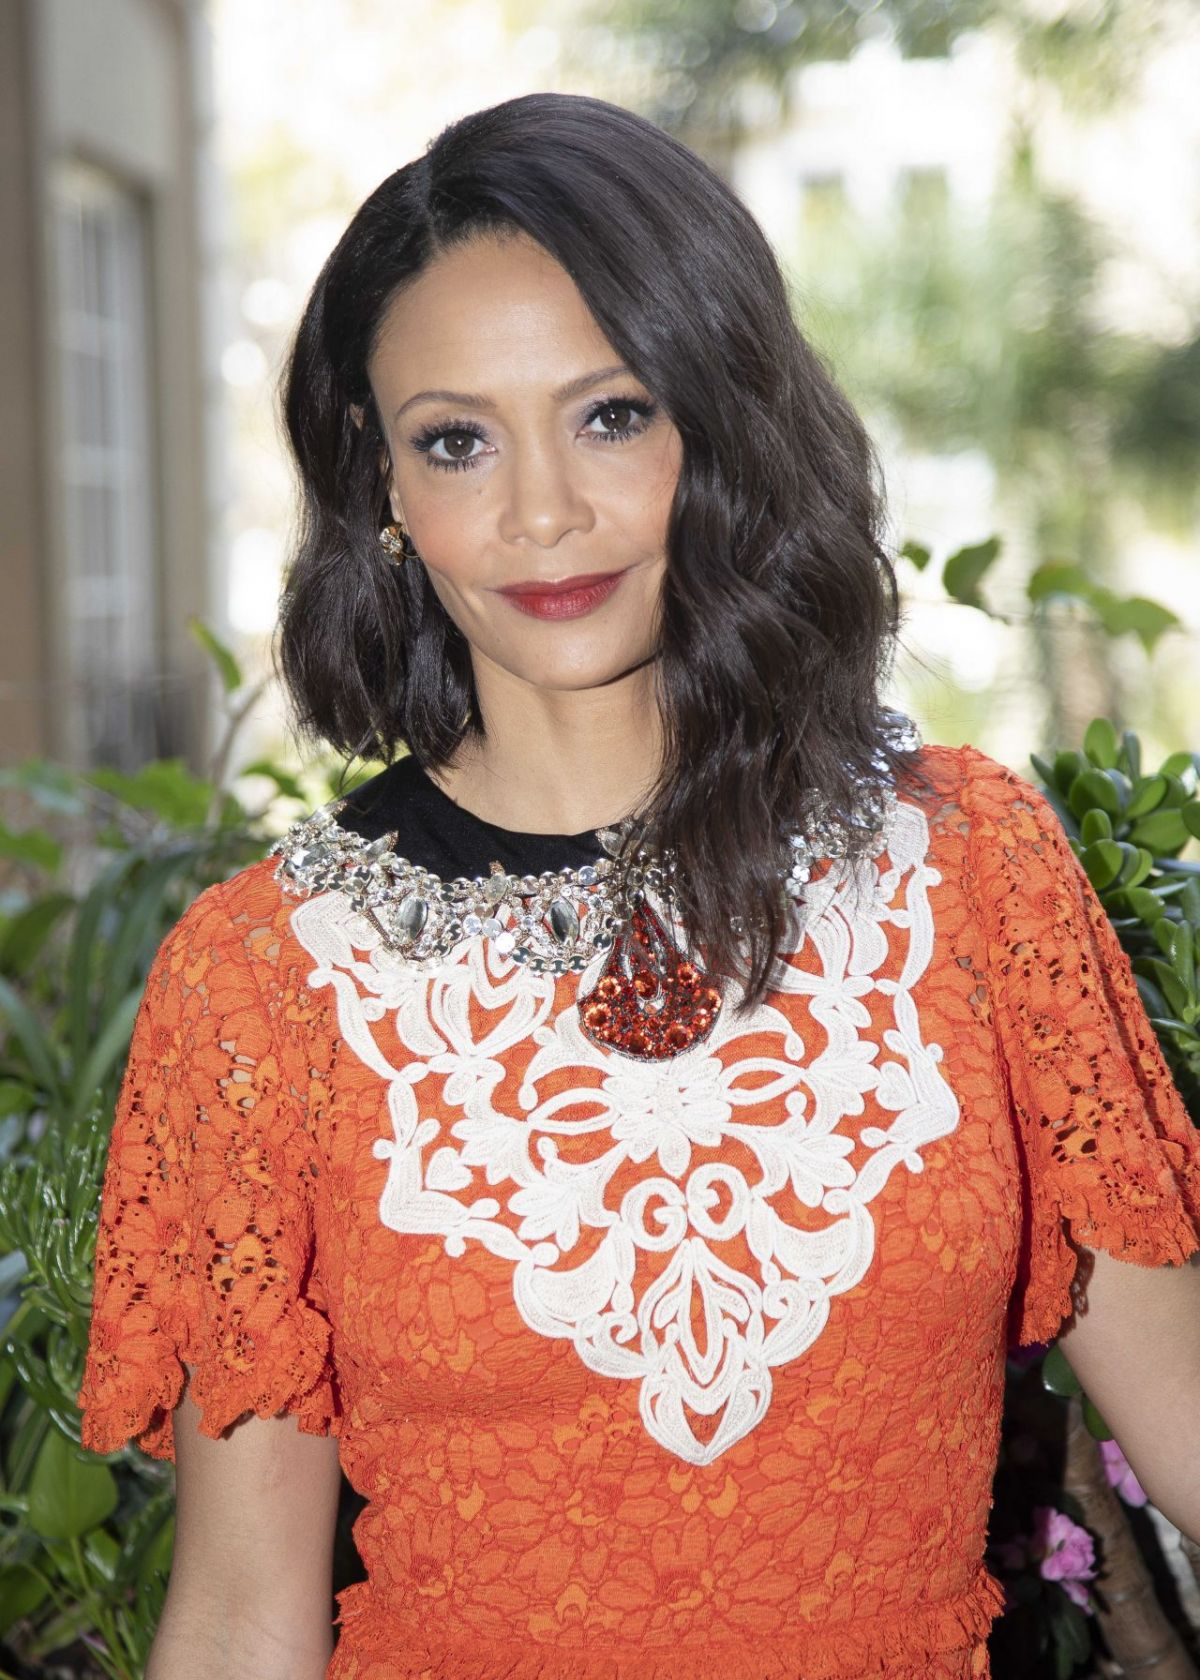 THANDIE NEWTON at Emmy Awards 2018 in Los Angeles 09/17